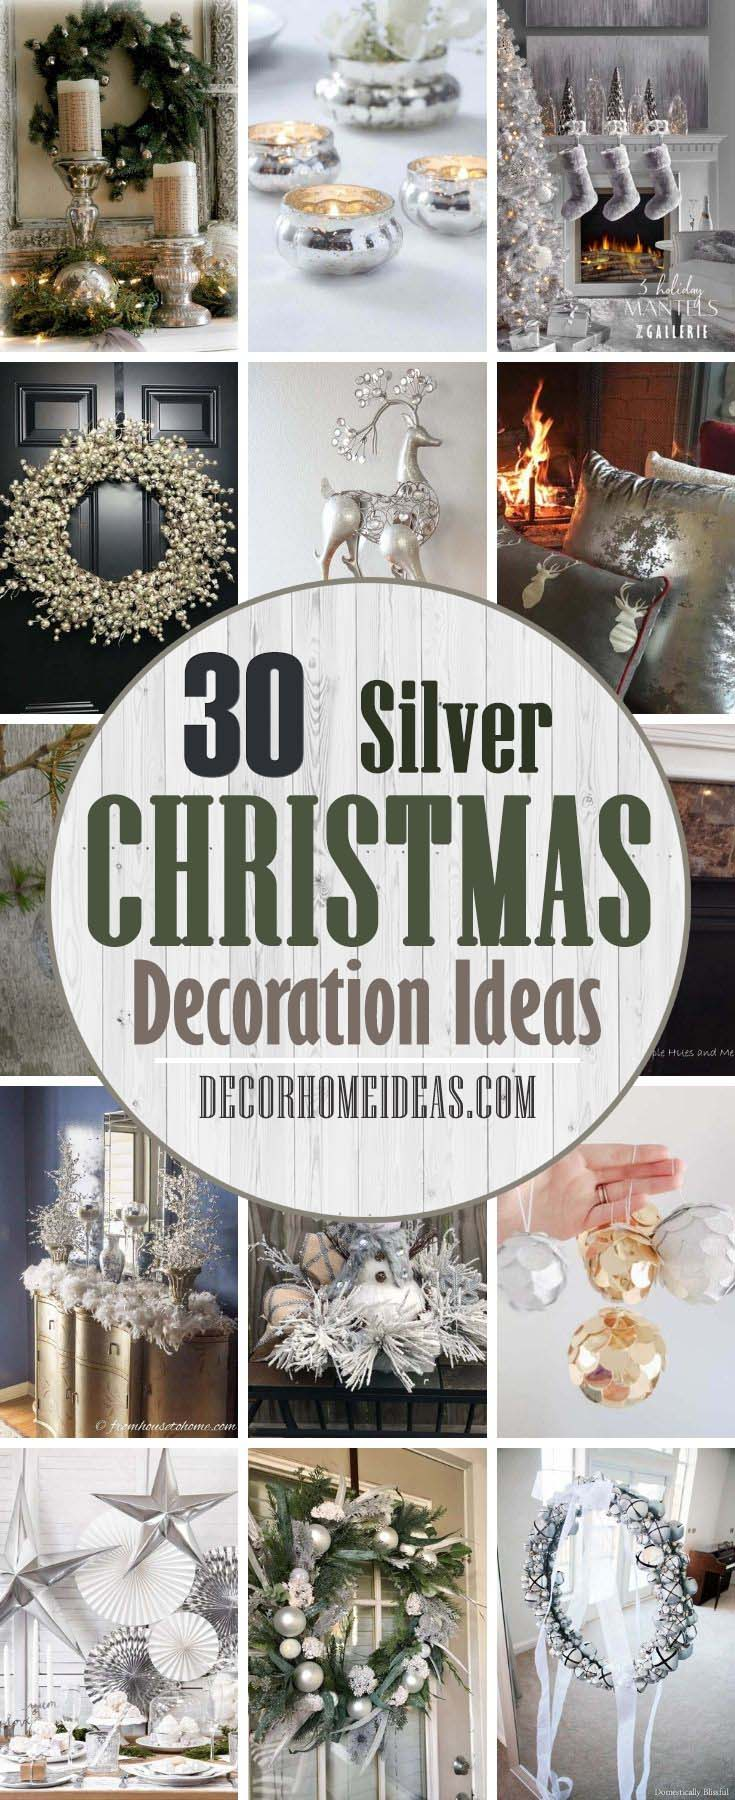 Best Silver Christmas Decorations. Silver and white color combination look surreal. It is reminiscent of the icy winter days. So this Christmas,  forget the traditional green and red and opt for silver and white theme instead. It is neutral and can be used all winter long. #decorhomeideas